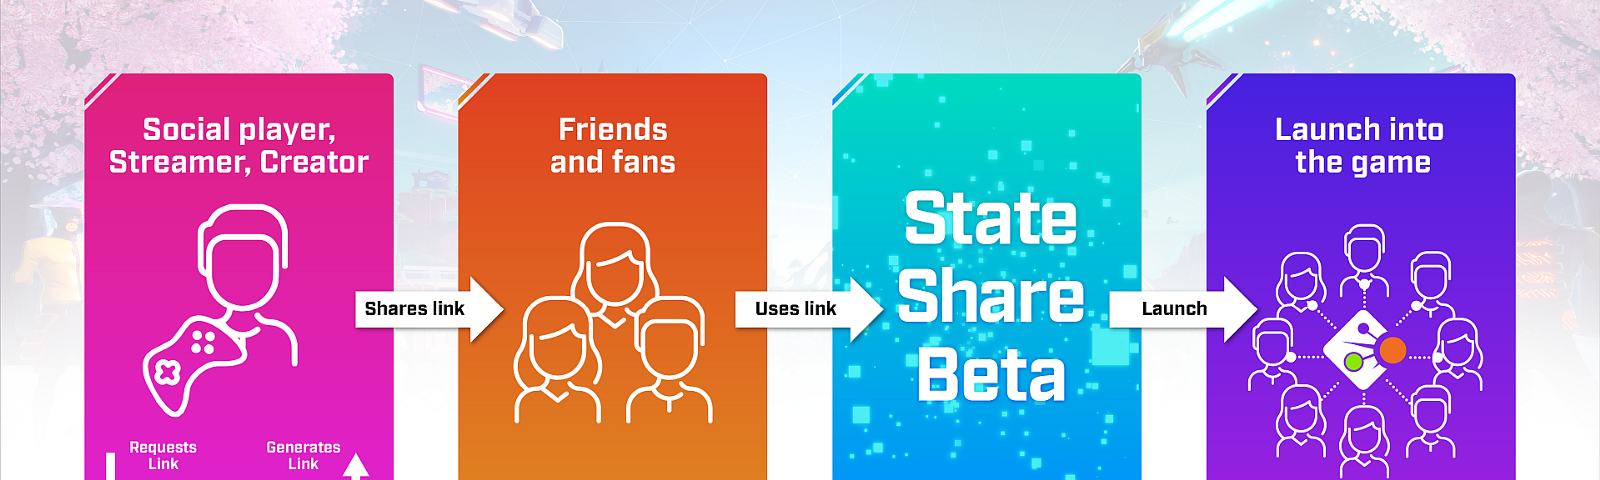 Image of State Share Beta links and how they flow into the game.